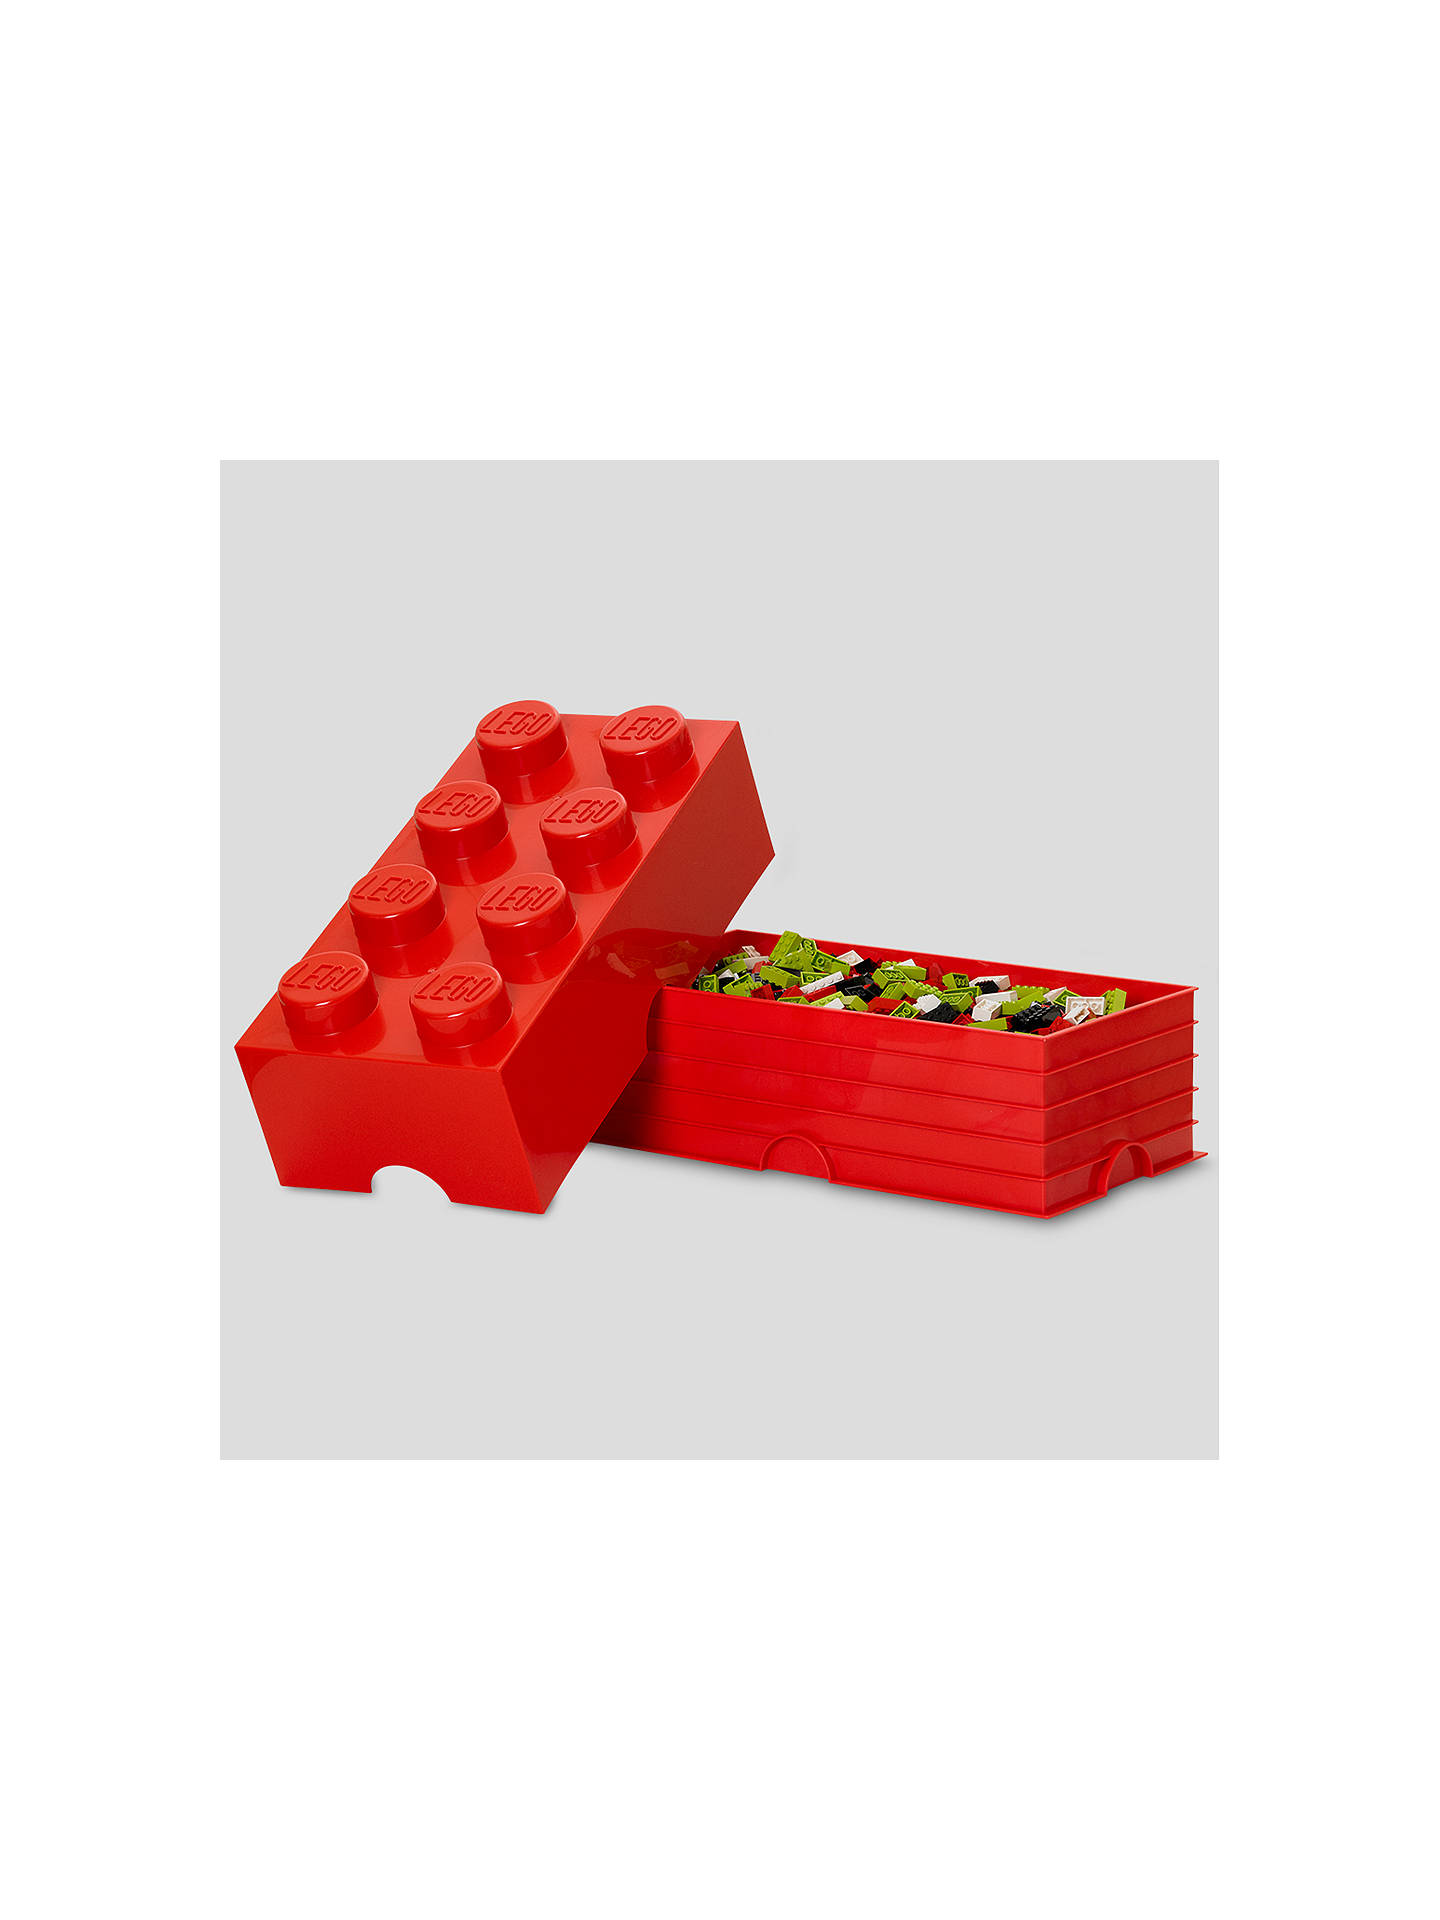 BuyLEGO THE LEGO MOVIE 40041733 8 Stud Storage Brick, Red Online at johnlewis.com